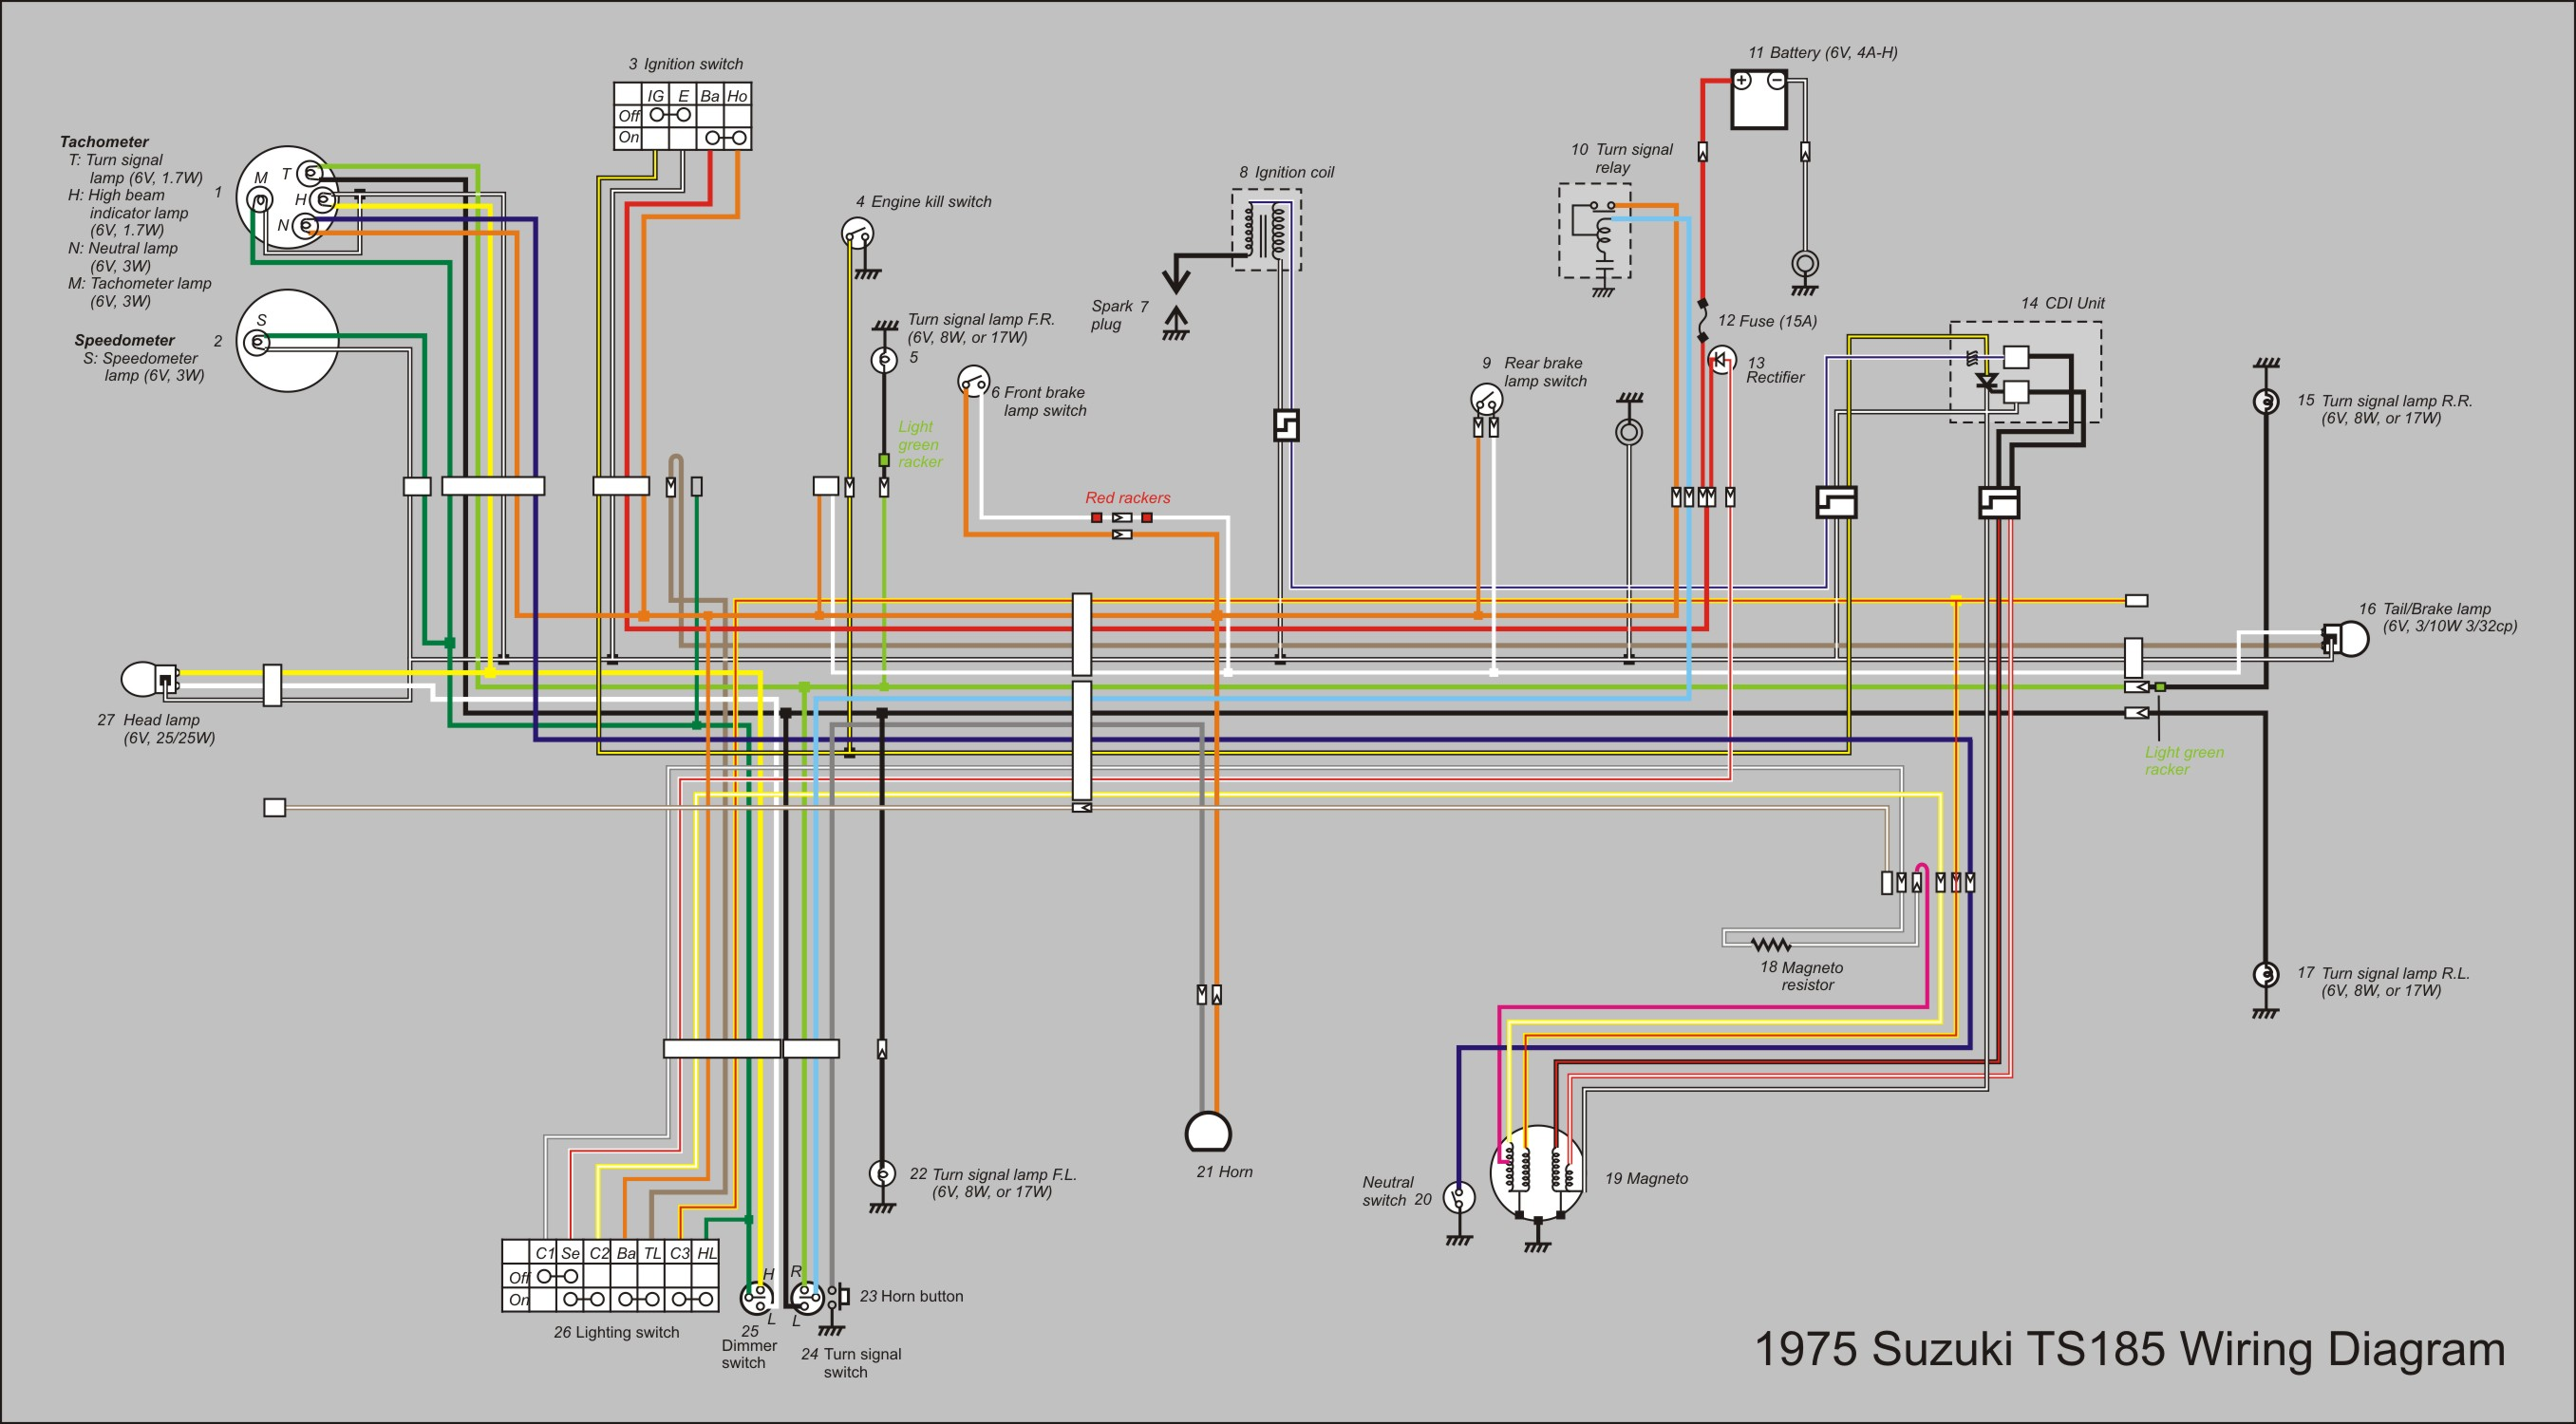 TS185_Wiring_Diagram_new file ts185 wiring diagram new jpg wikimedia commons true ts 49f wiring diagram at reclaimingppi.co